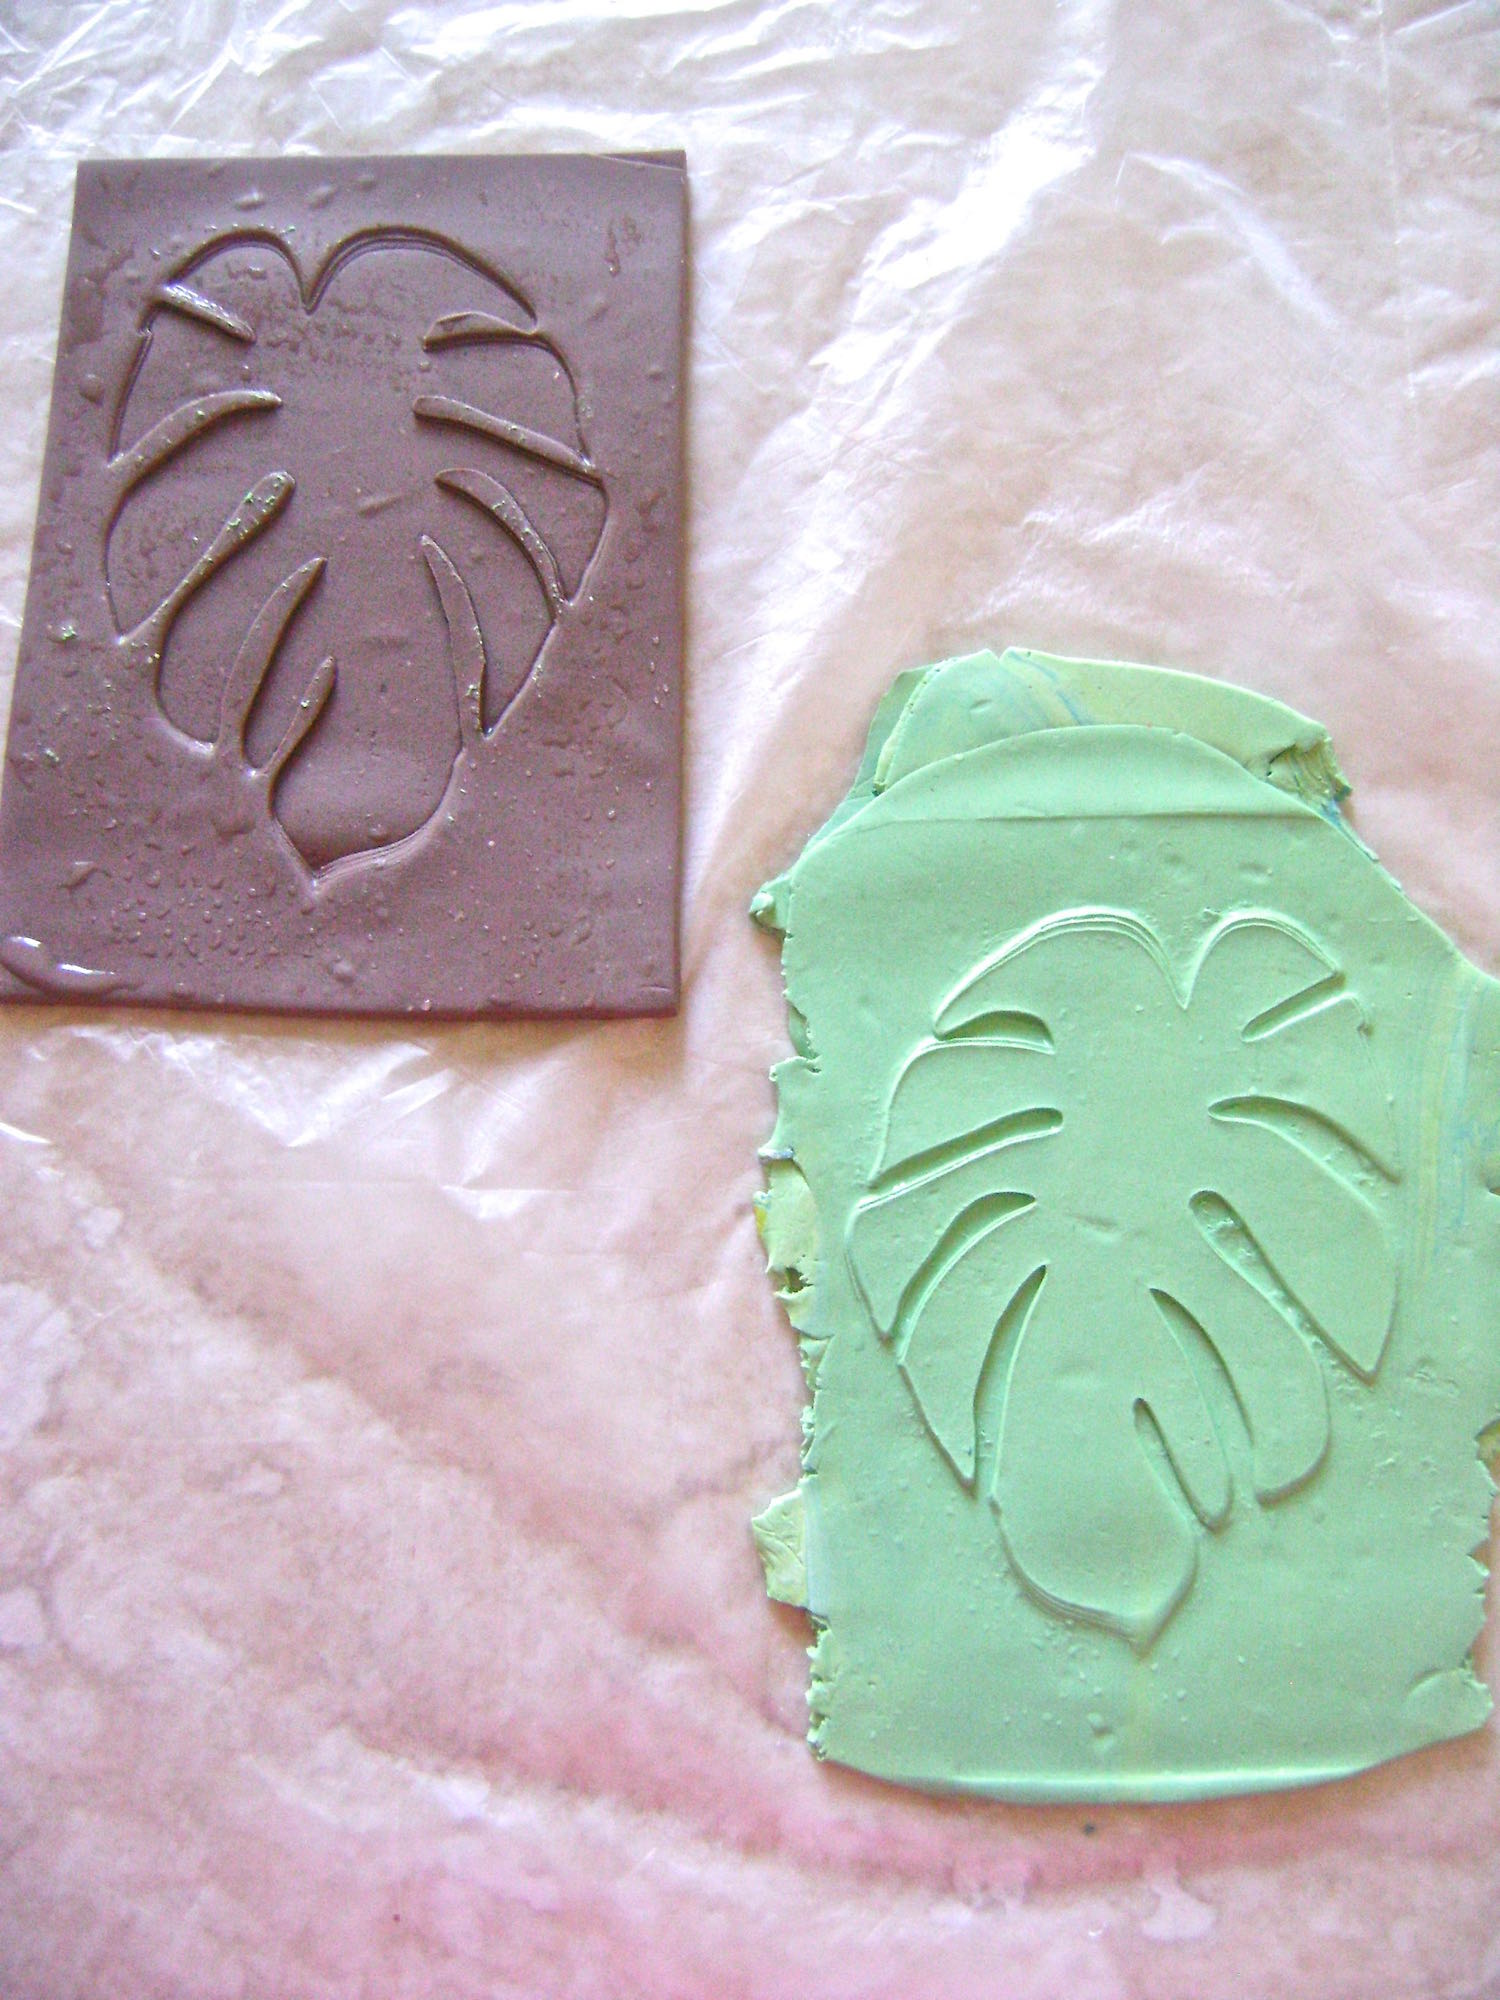 step 8 - Your new texture sheet will create raised images on your project as you see here with the raw green clay.